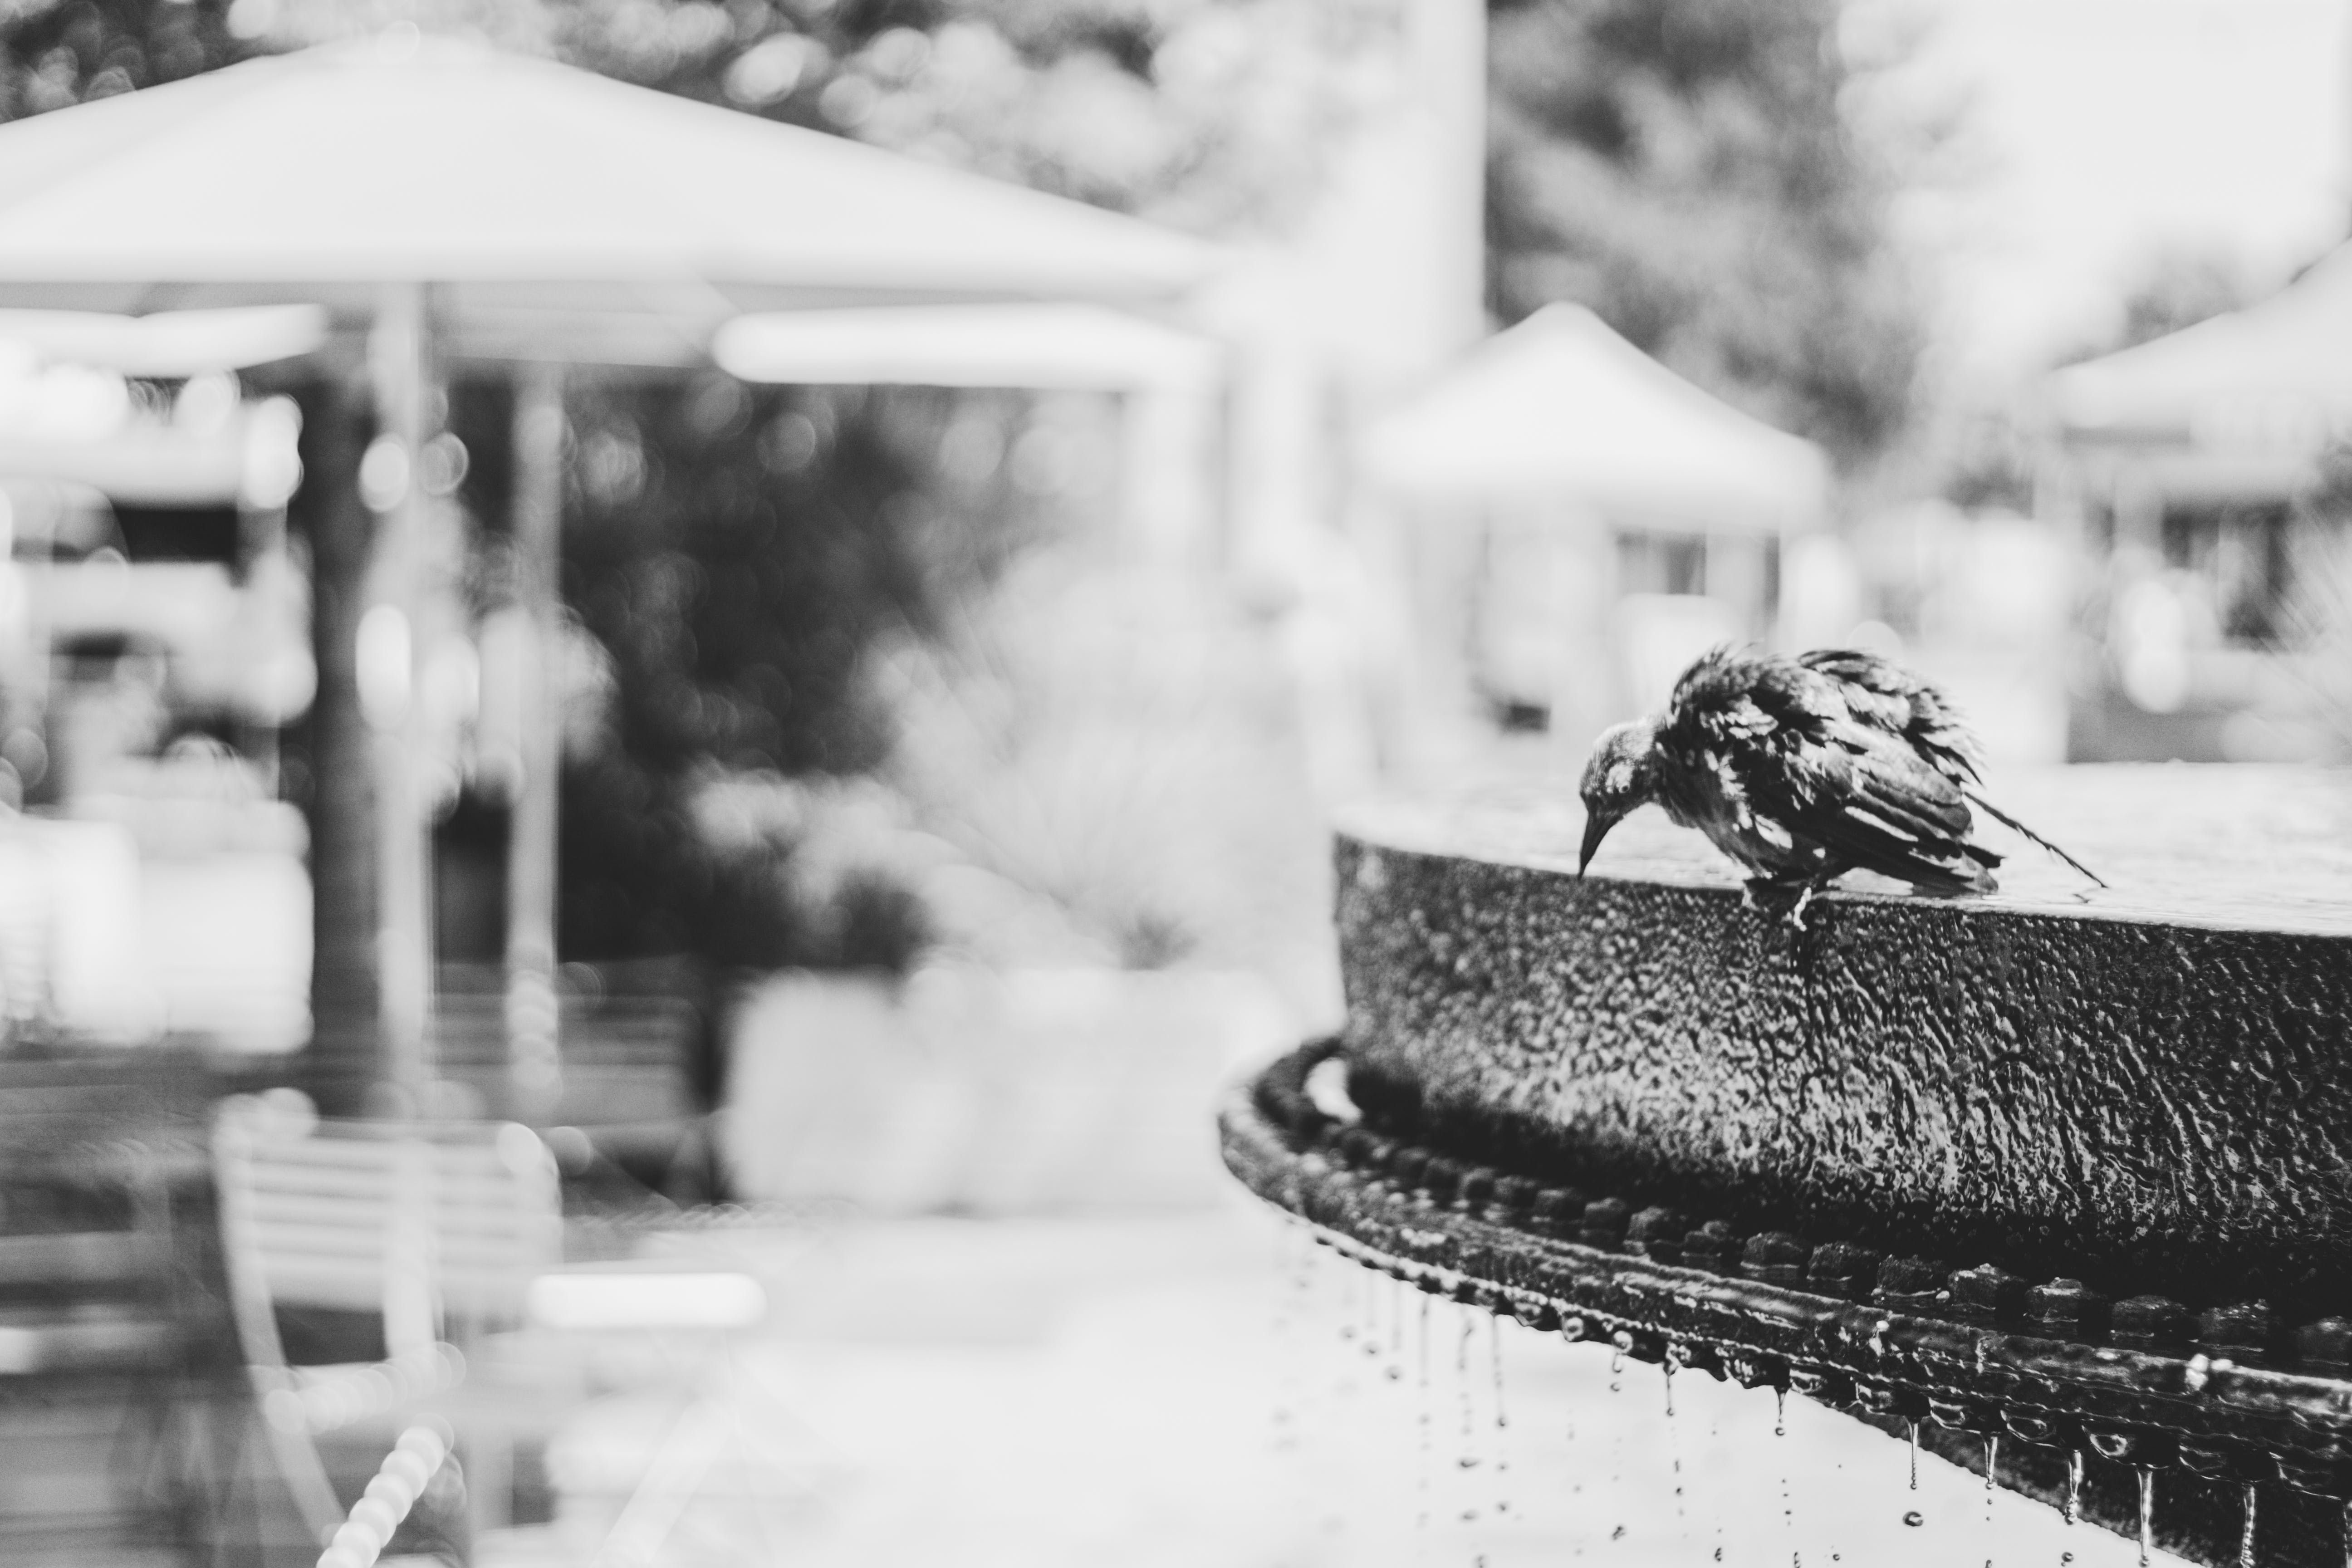 Grayscale Photo of Bird on Water Fountain